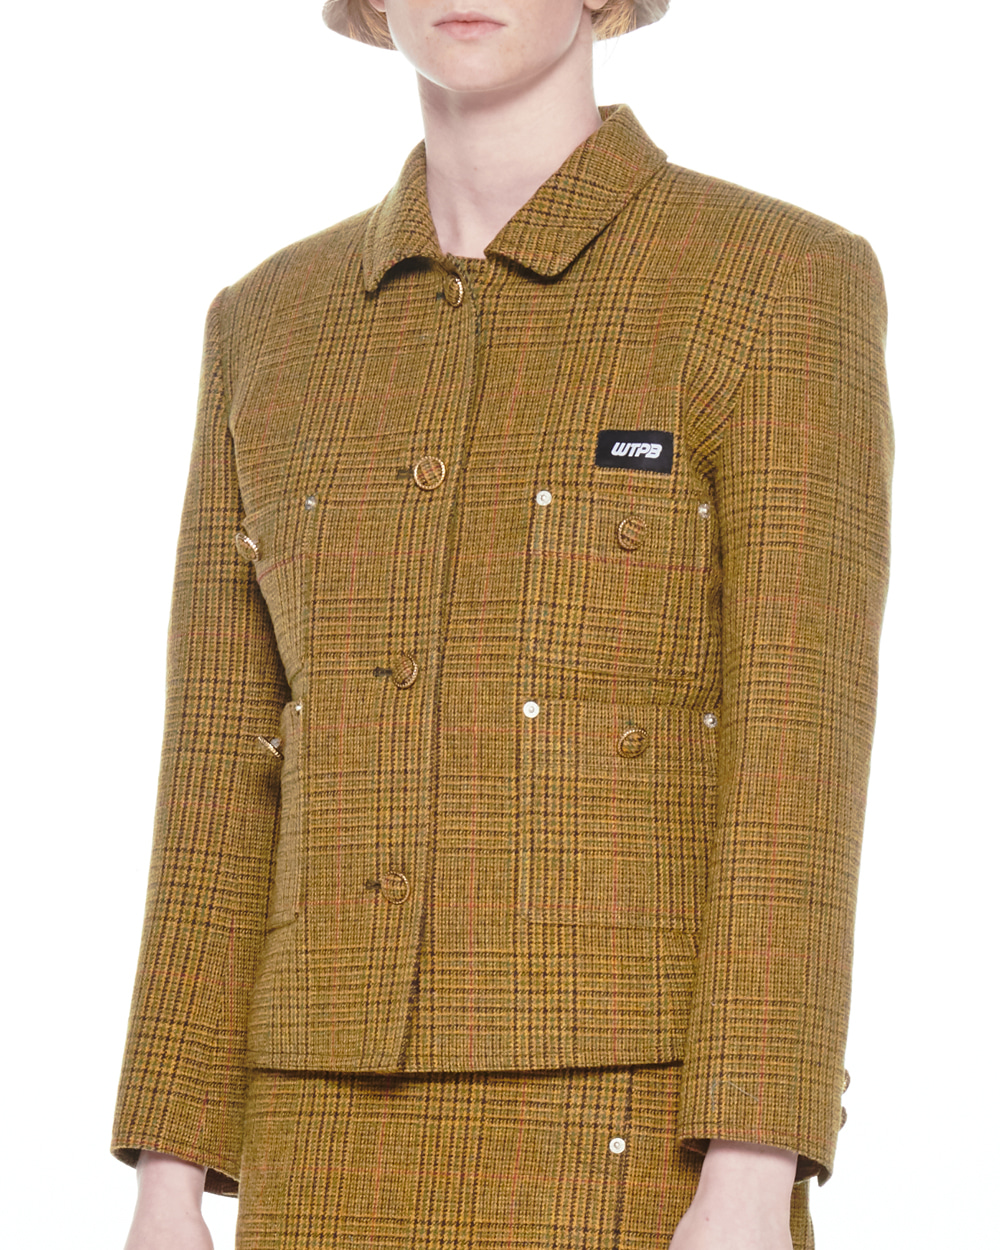 FW20 WOOL SHORT CHECK JACKET